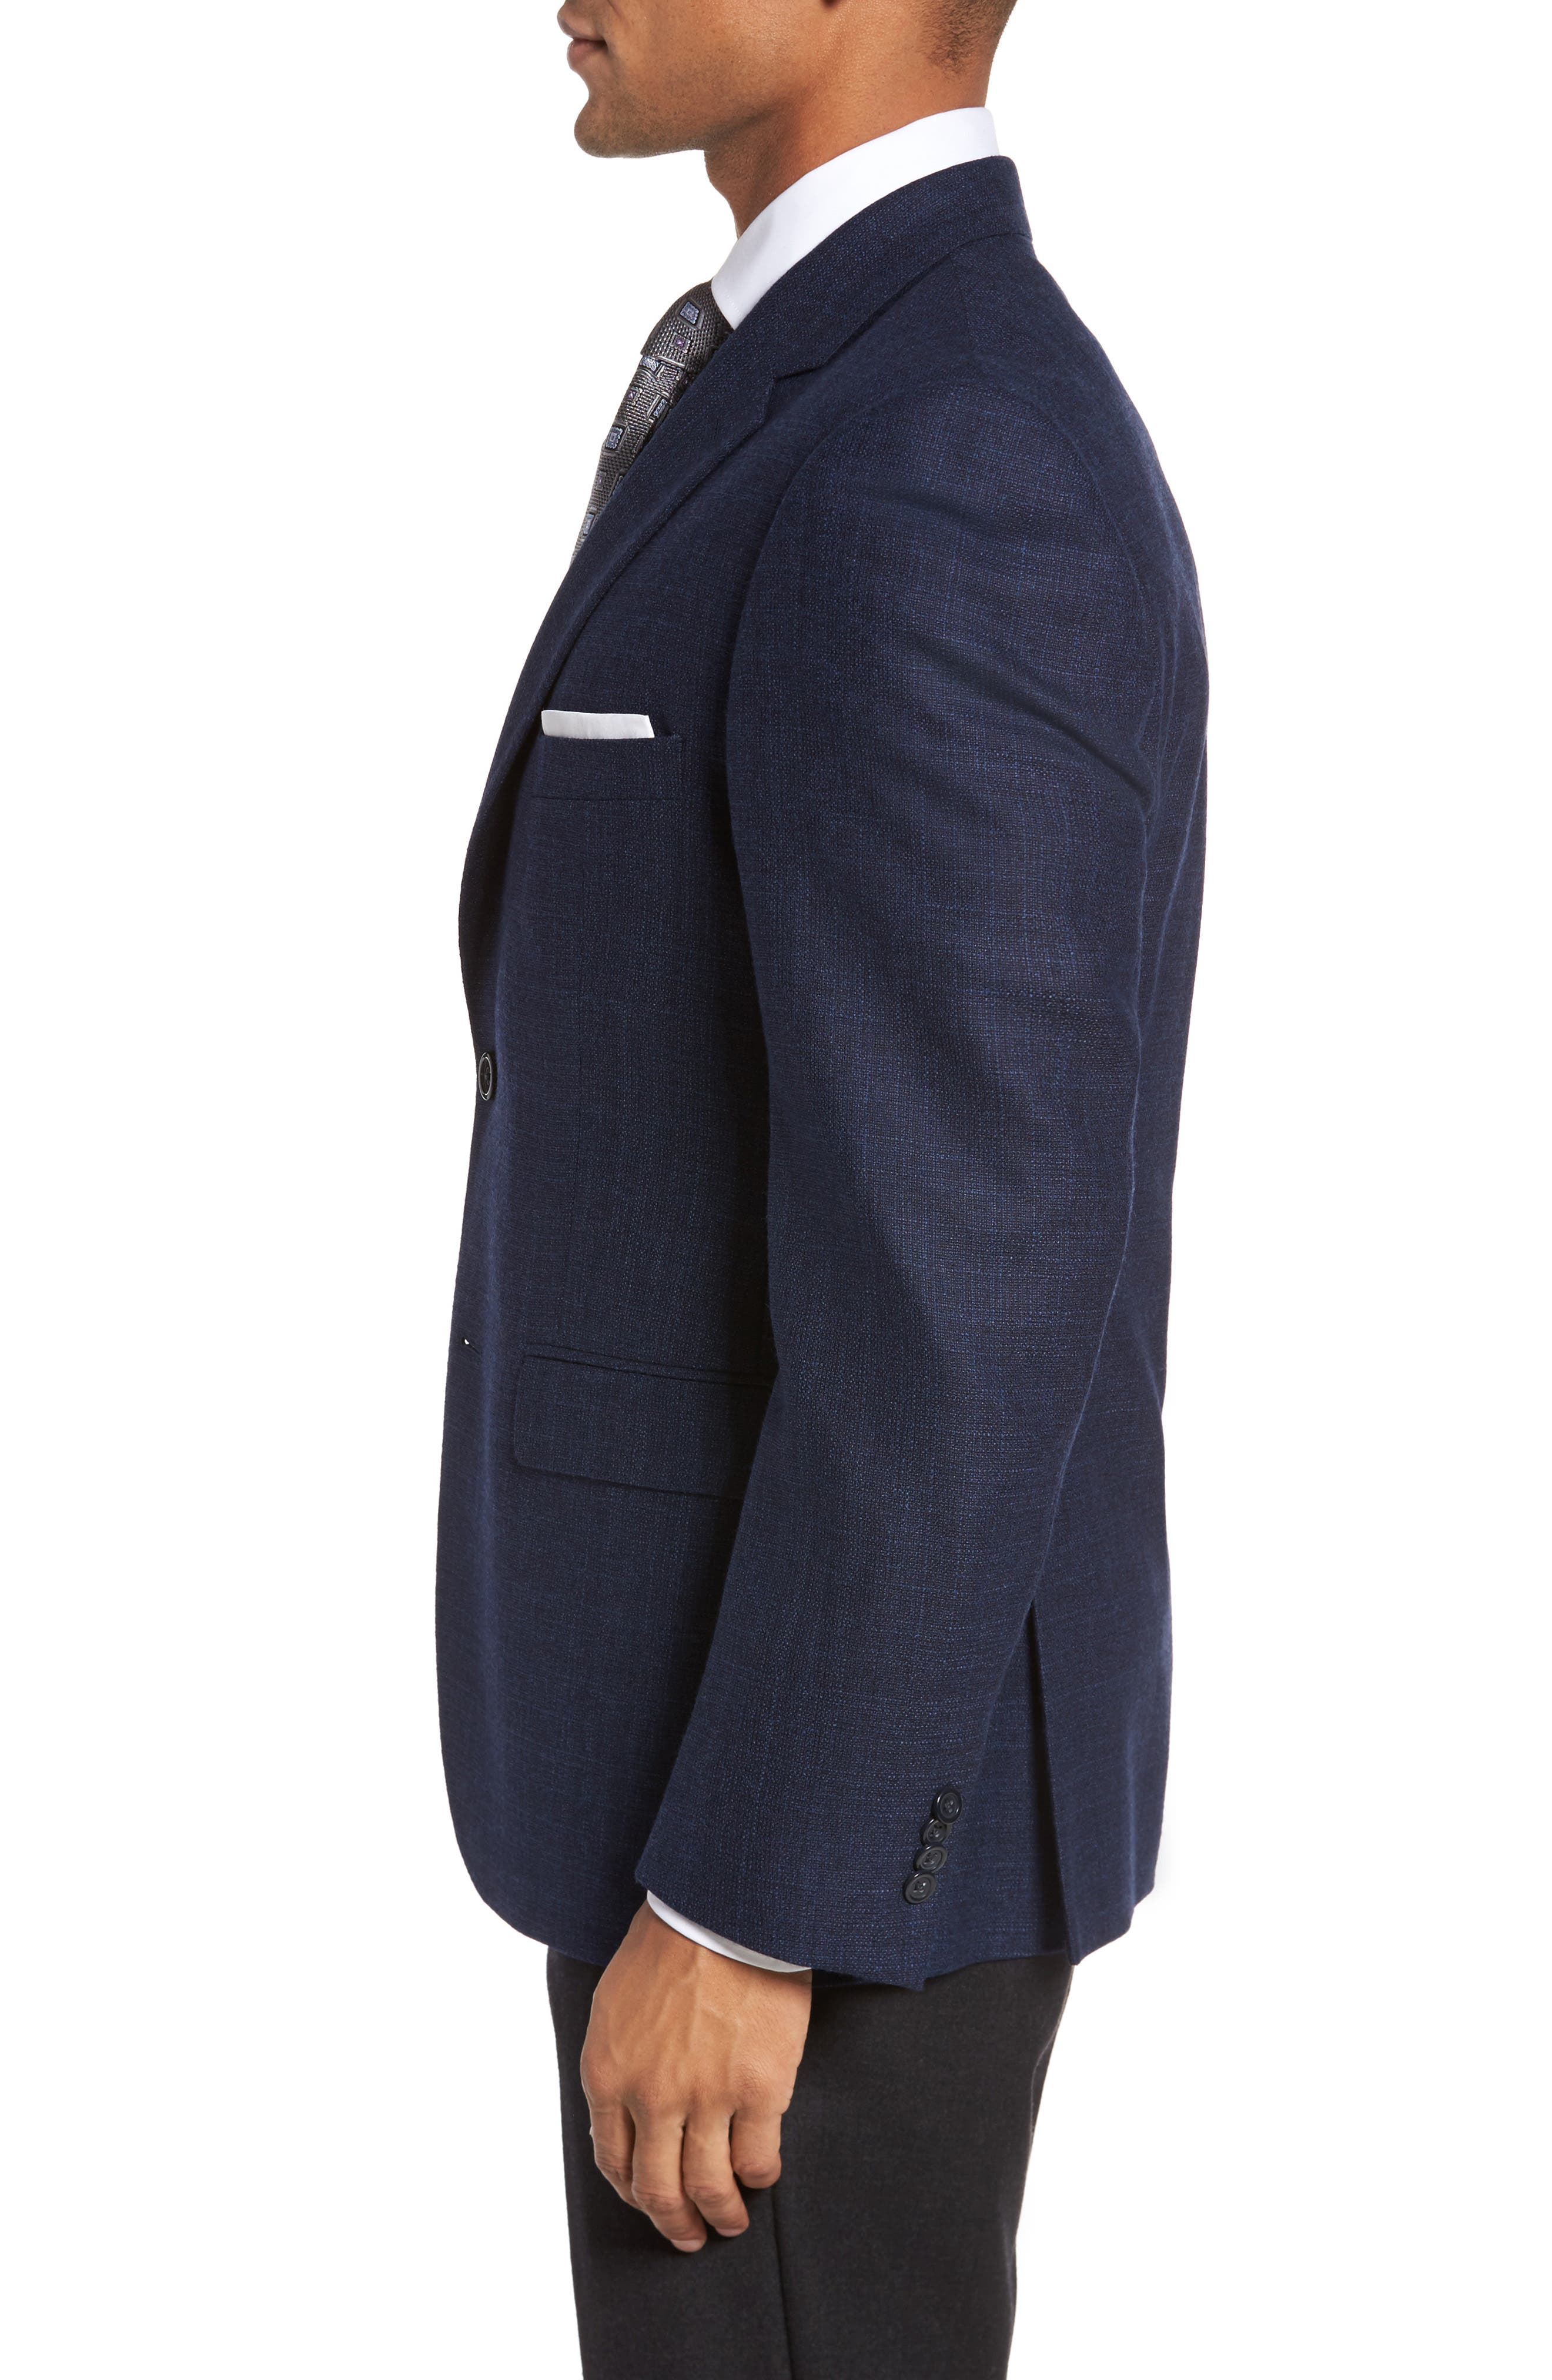 JB BRITCHES,                             Classic Fit Wool Blazer,                             Alternate thumbnail 3, color,                             422